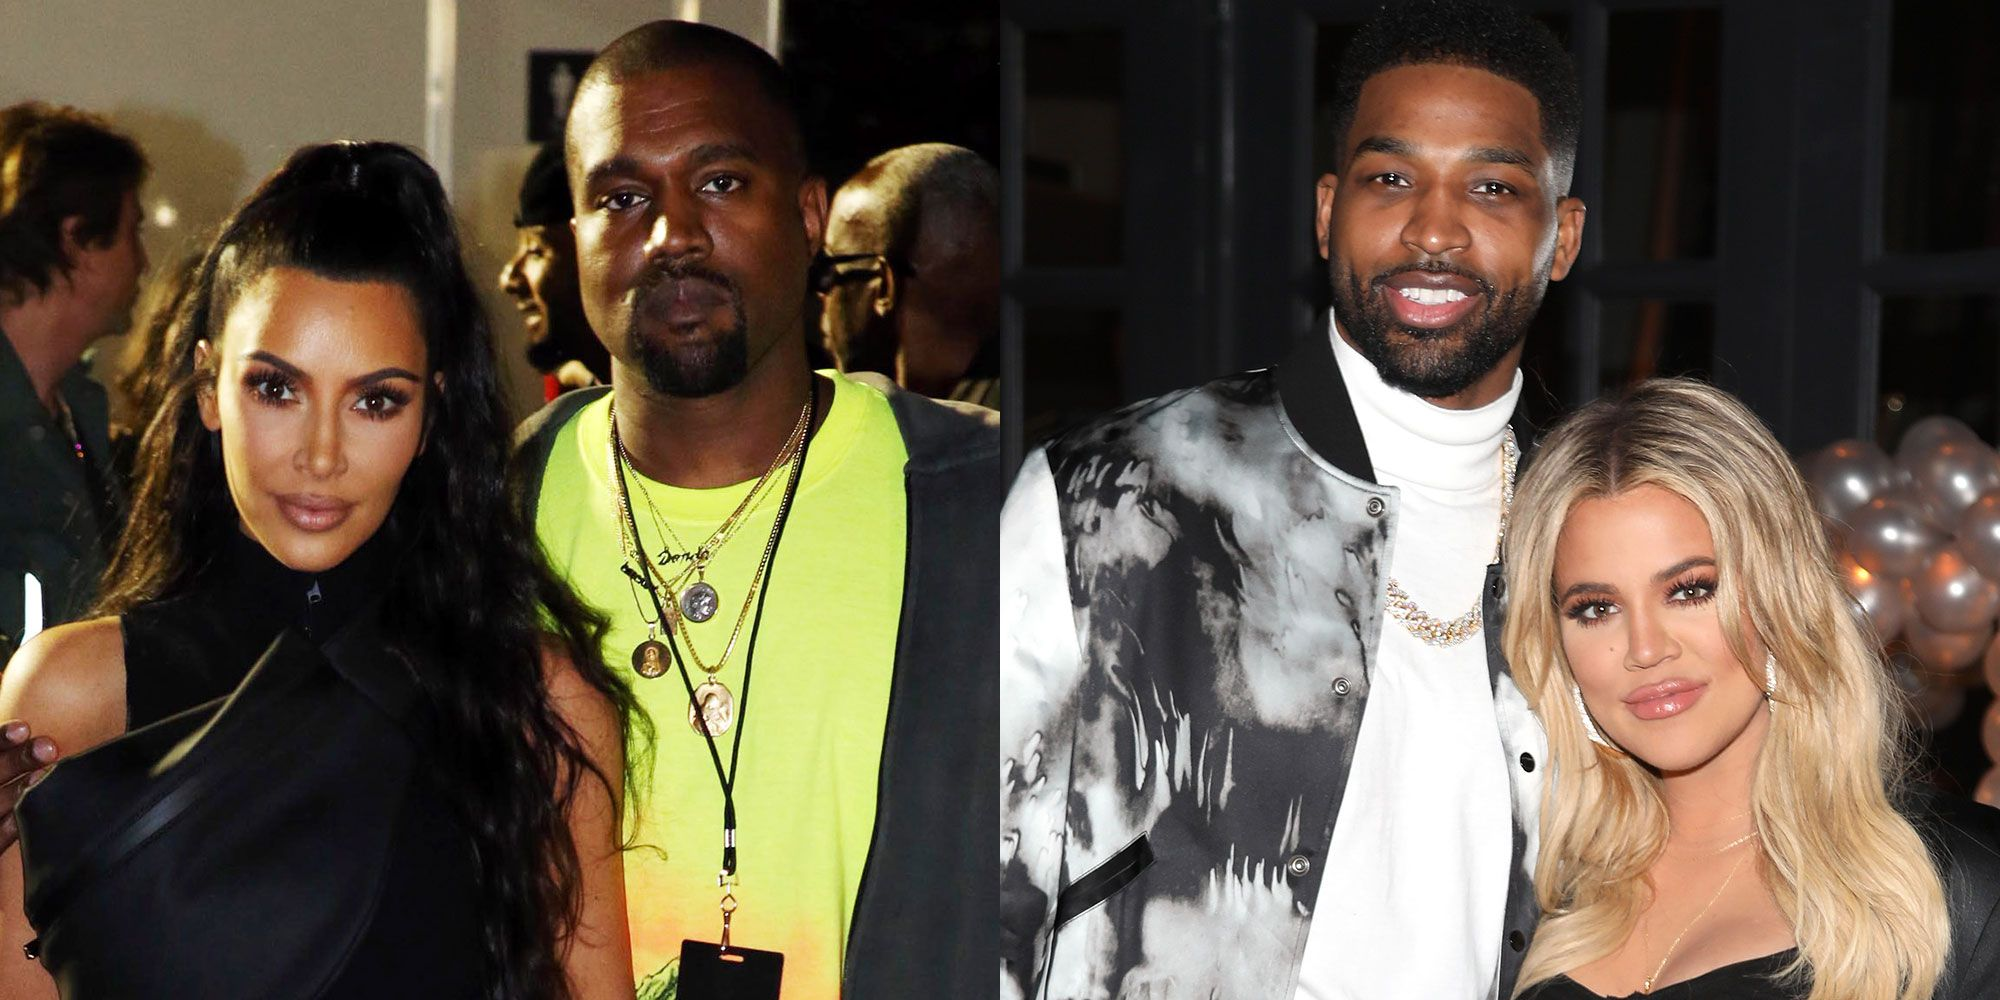 Kim Kardashian and Kanye West and Khloe Kardashian and Tristan Thompson